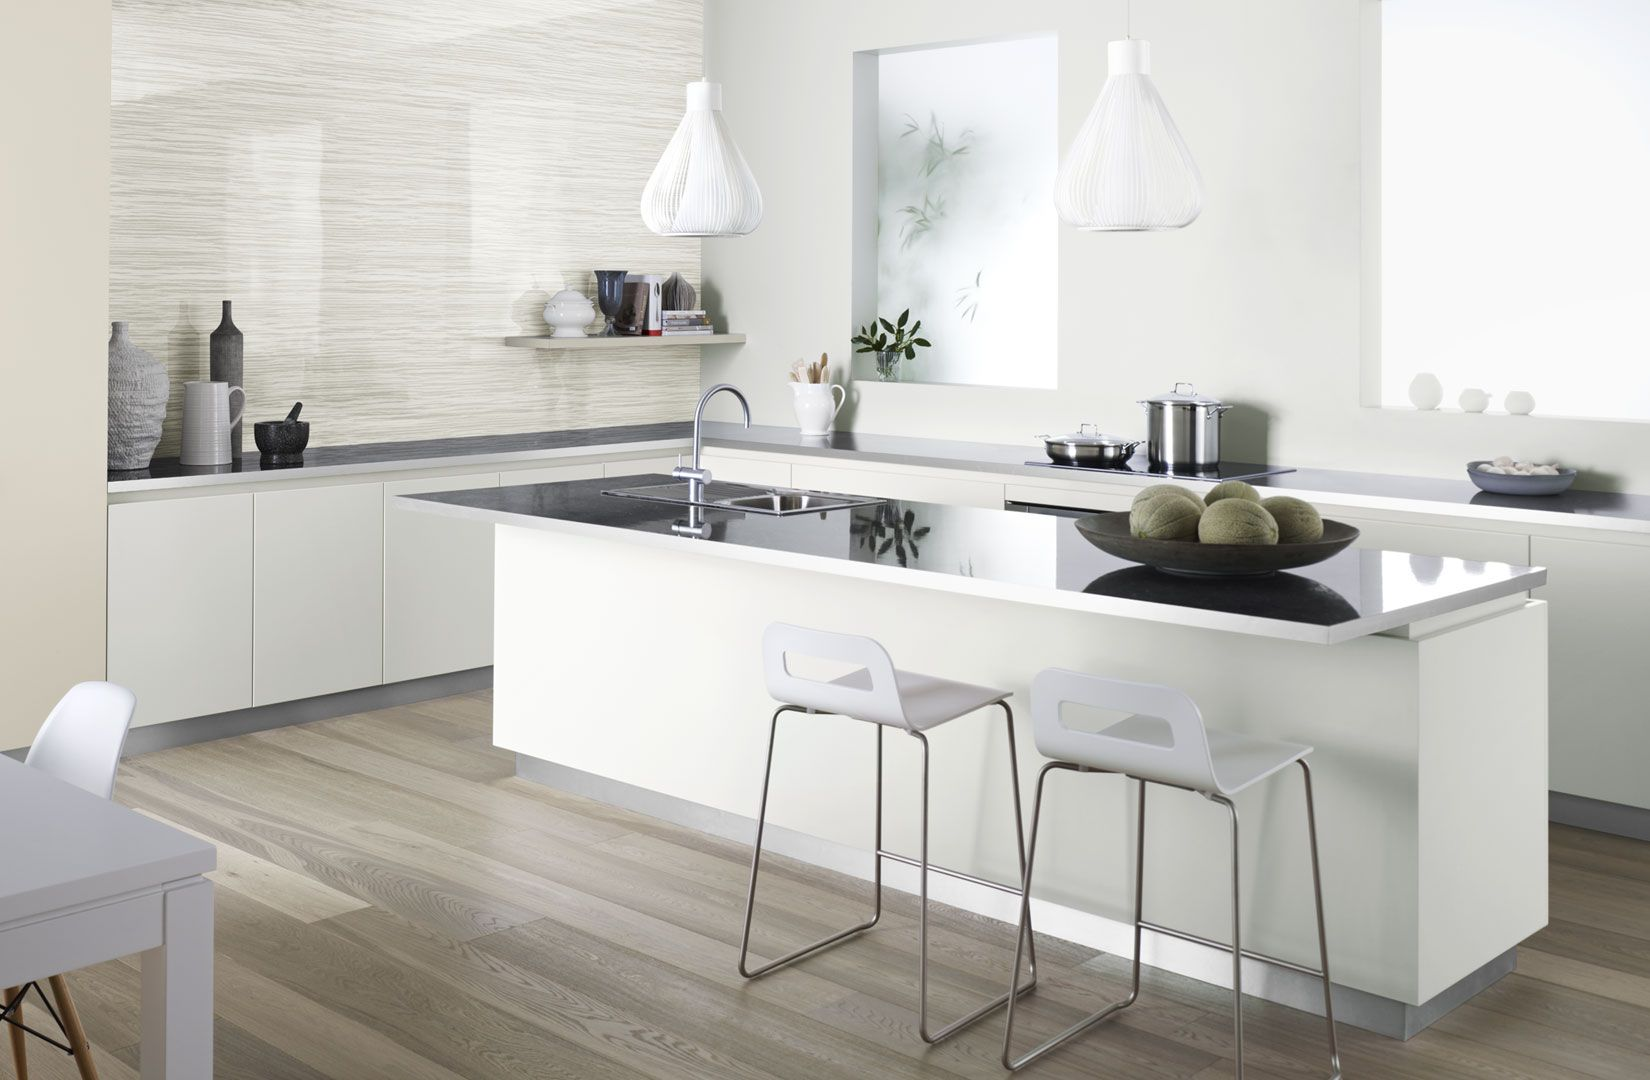 White Kitchen Splashback diamond gloss benchtop with brushed metal edging and brushed